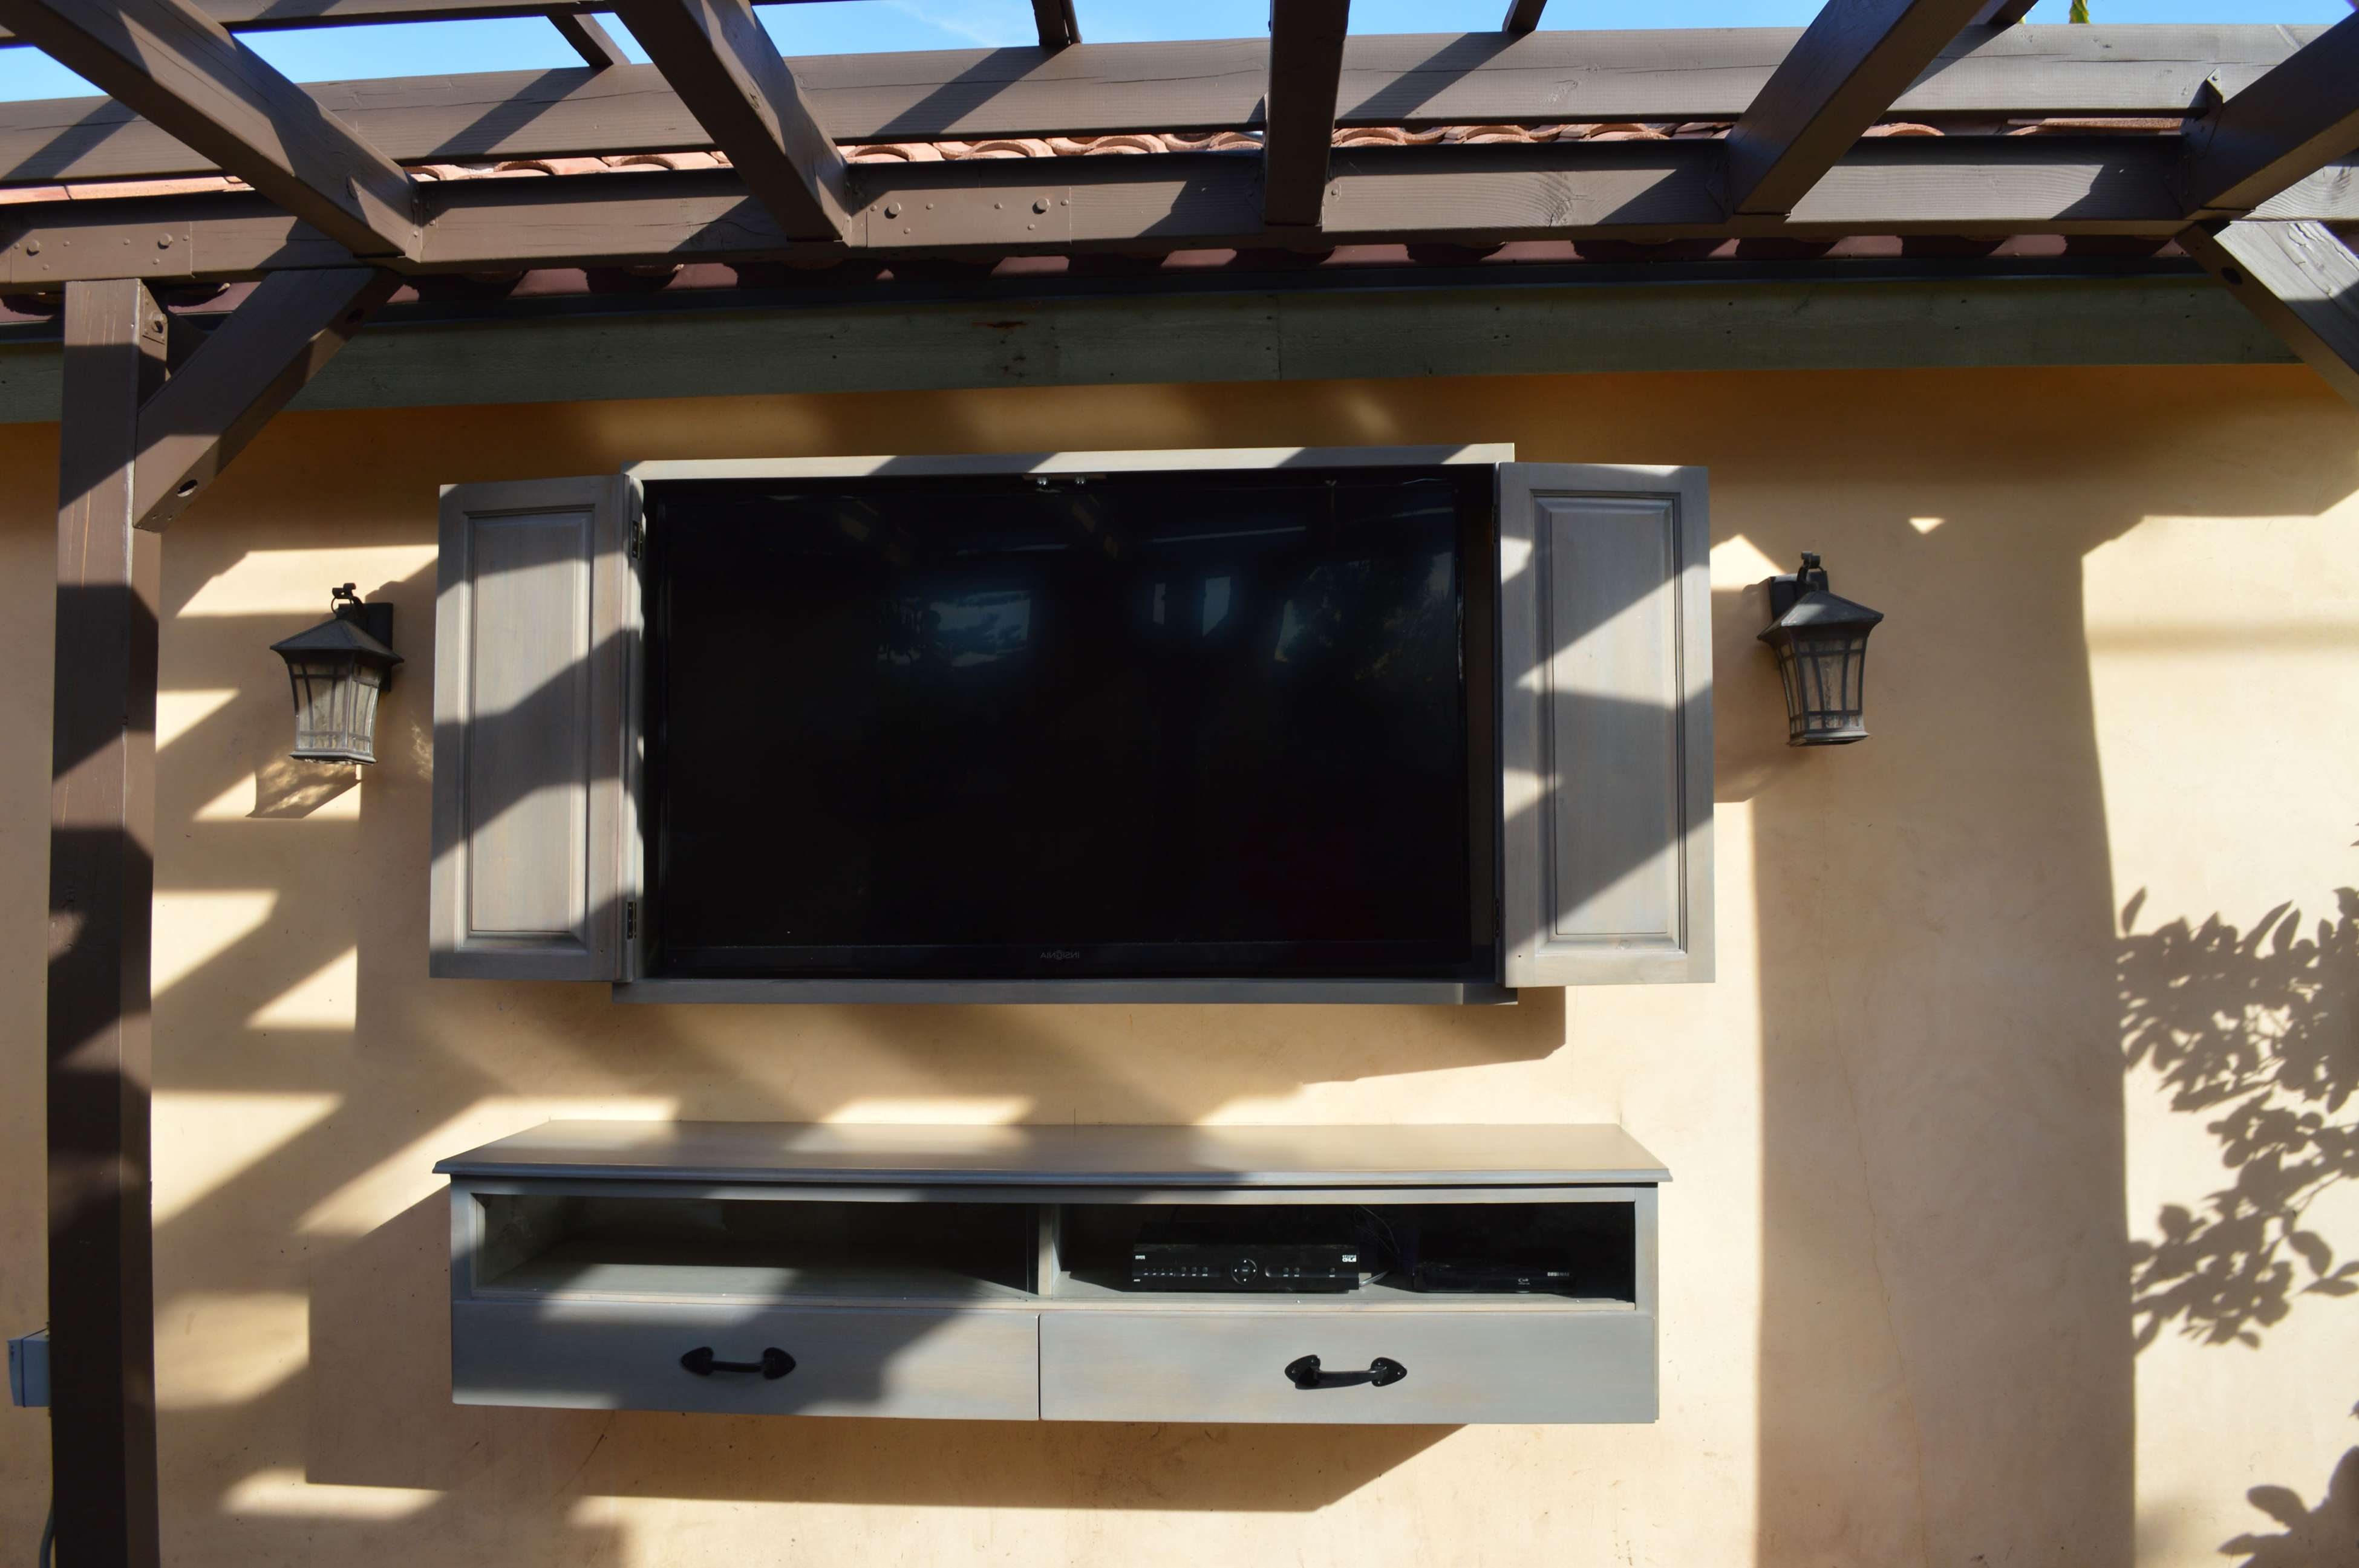 Rustic Outdoor Wall Mounted Tv Cabinets For Flat Screens With For Wall Mounted Tv Cabinets For Flat Screens With Doors (View 11 of 20)